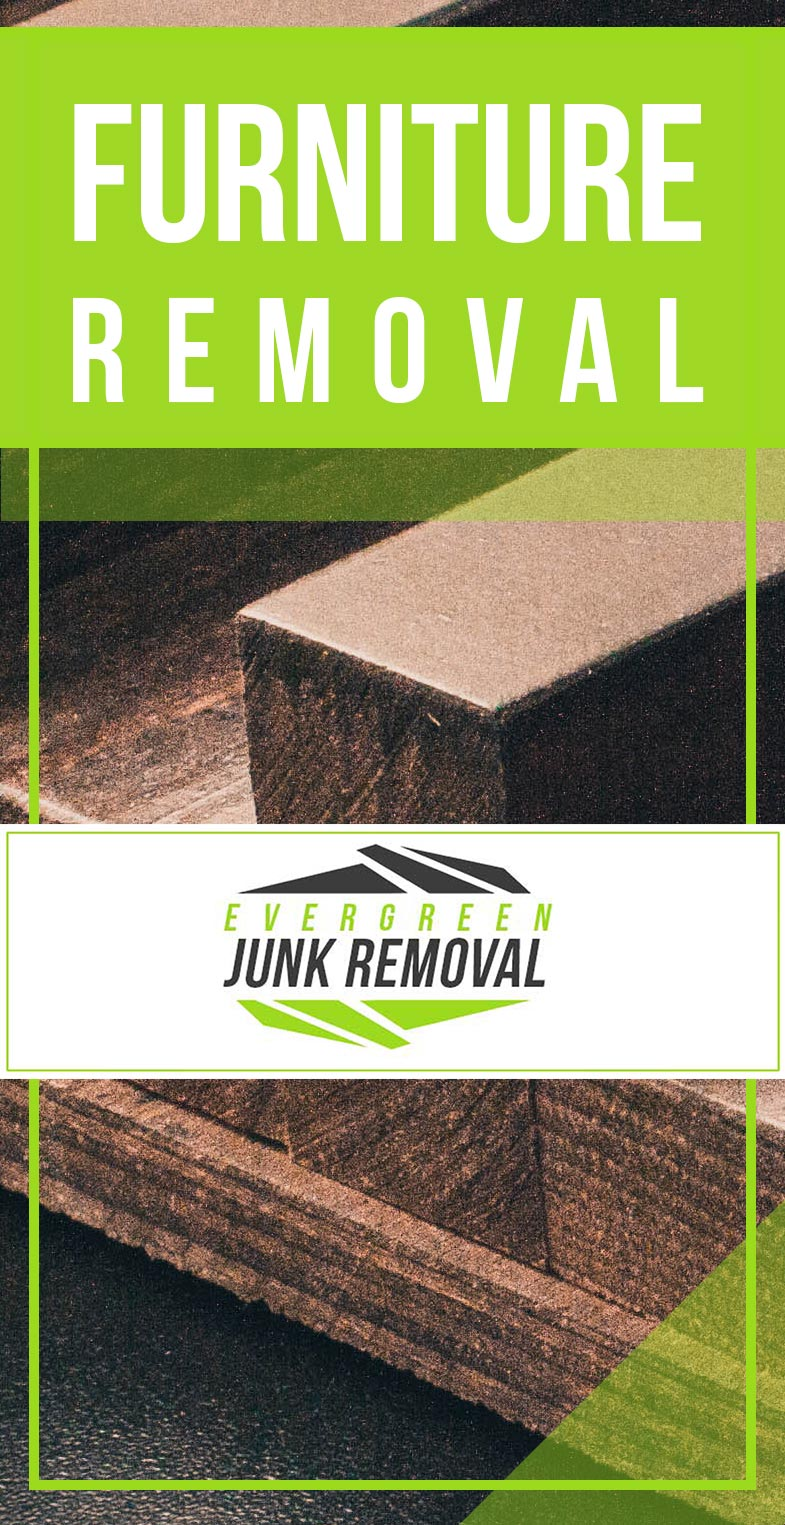 Lewisville Furniture Removal